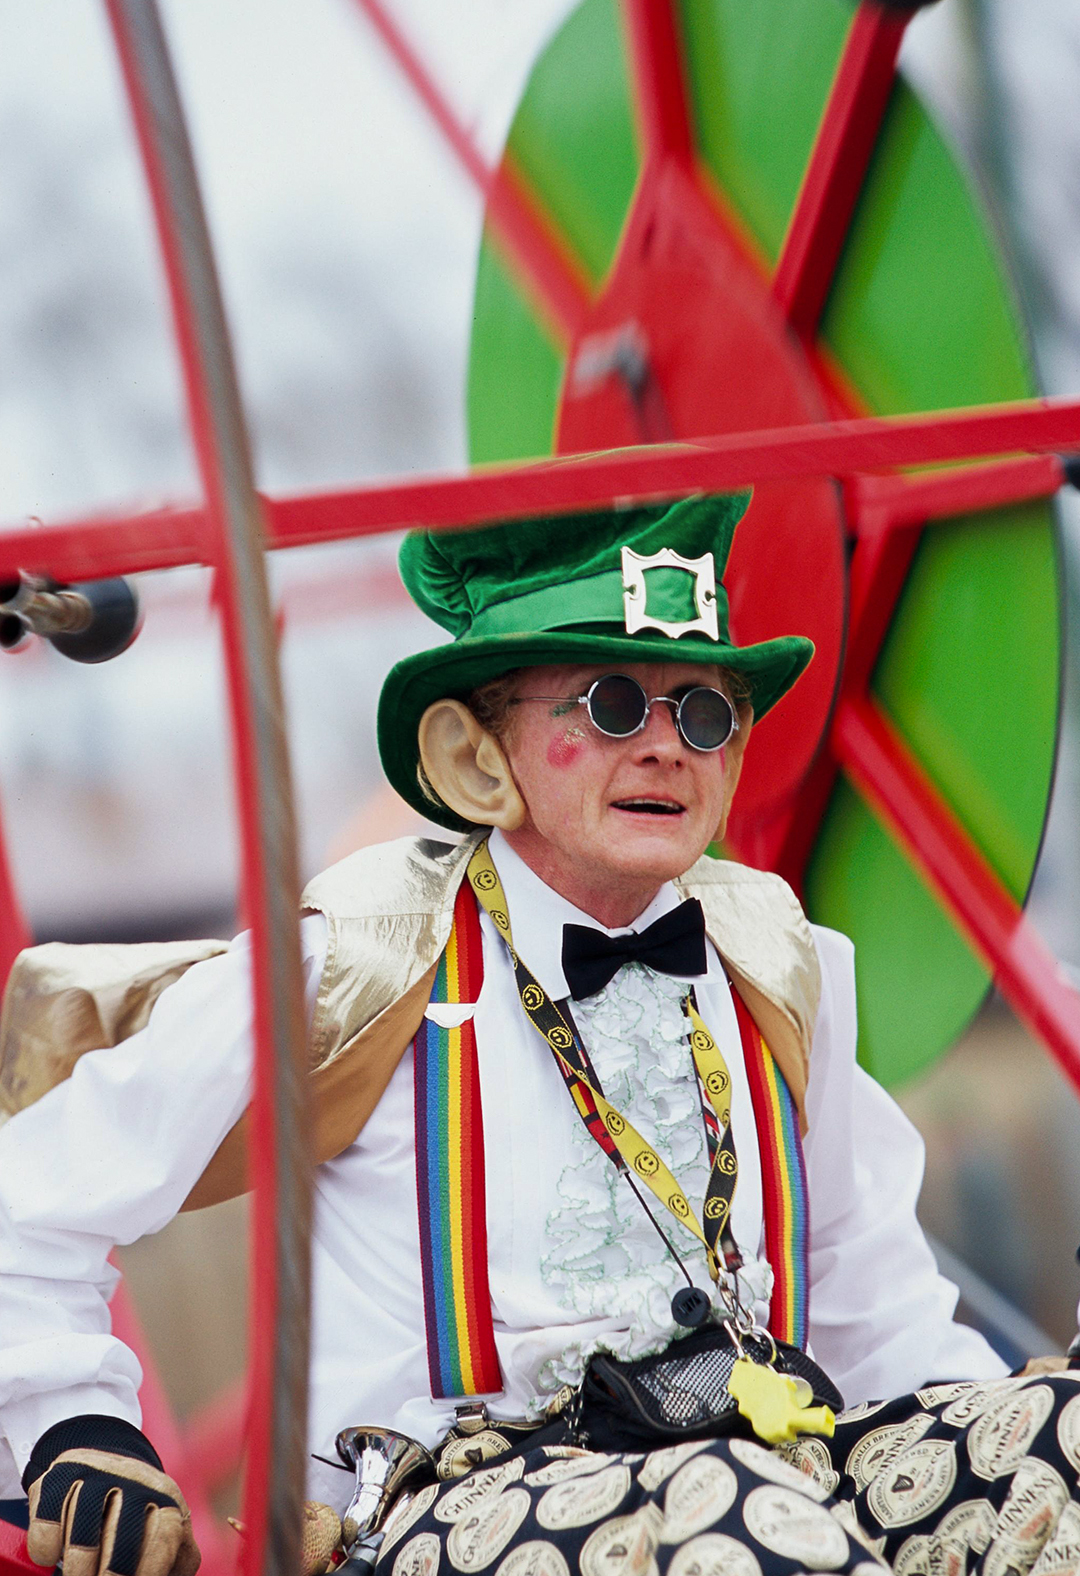 male dressed as leprechaun inside giant red wheel